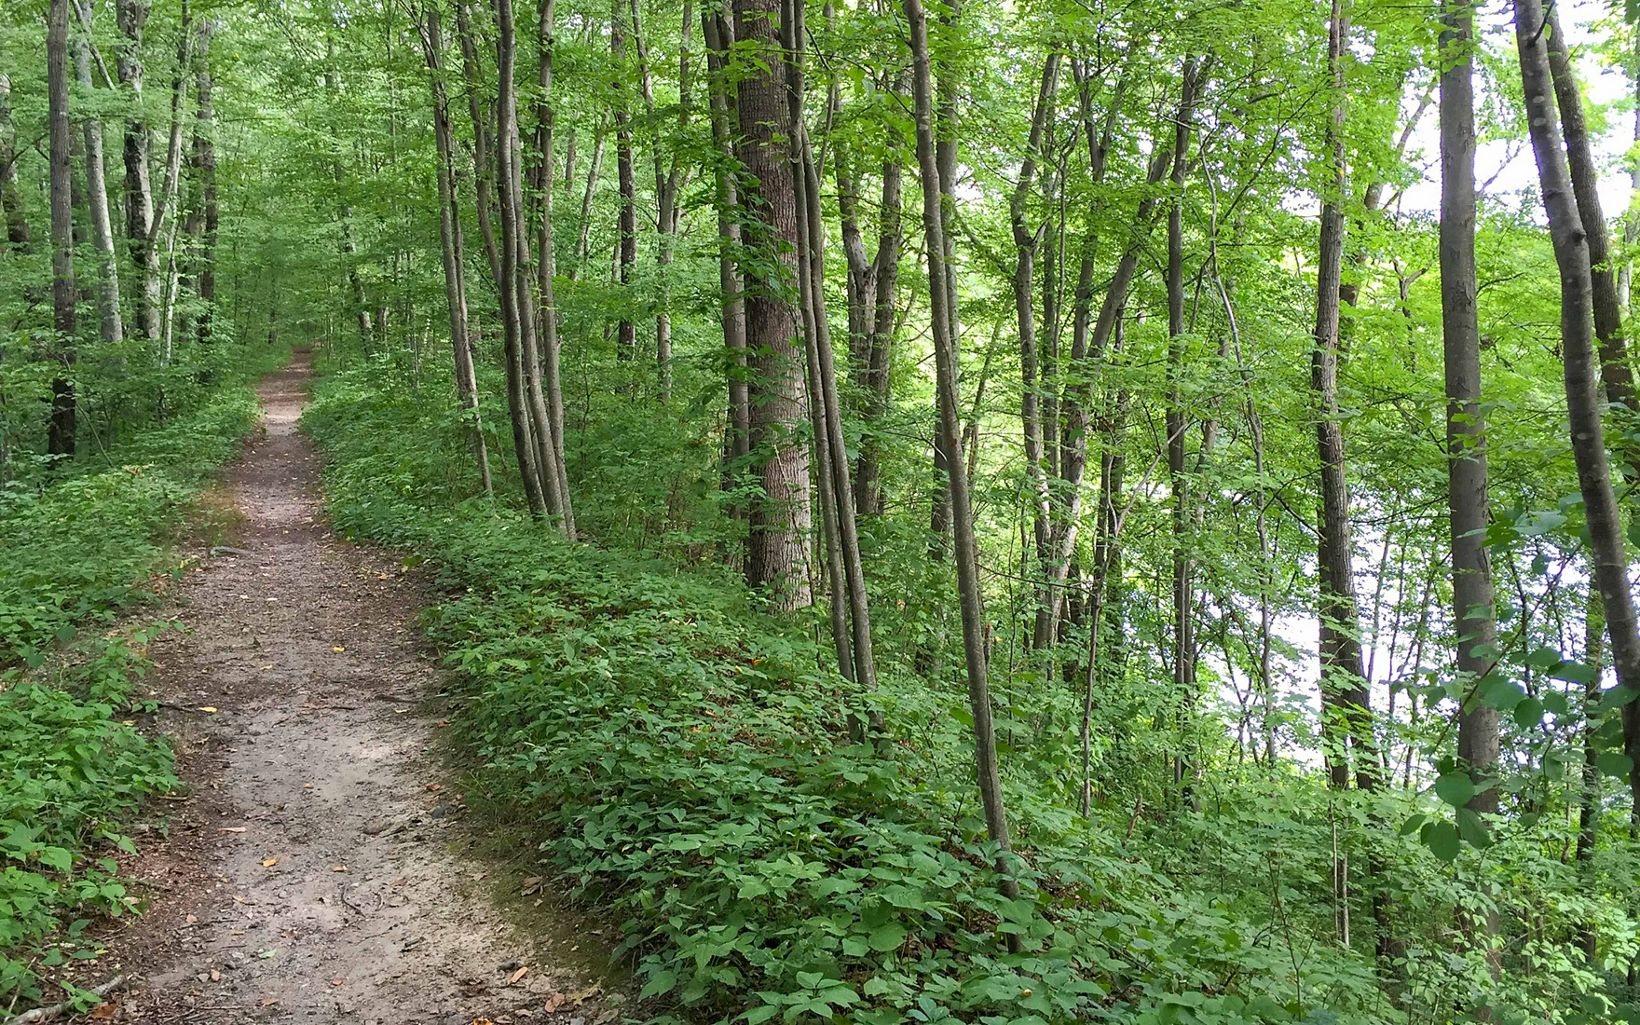 A straight, narrow trail into the forest, with the land sloping steeply to a pond at right.